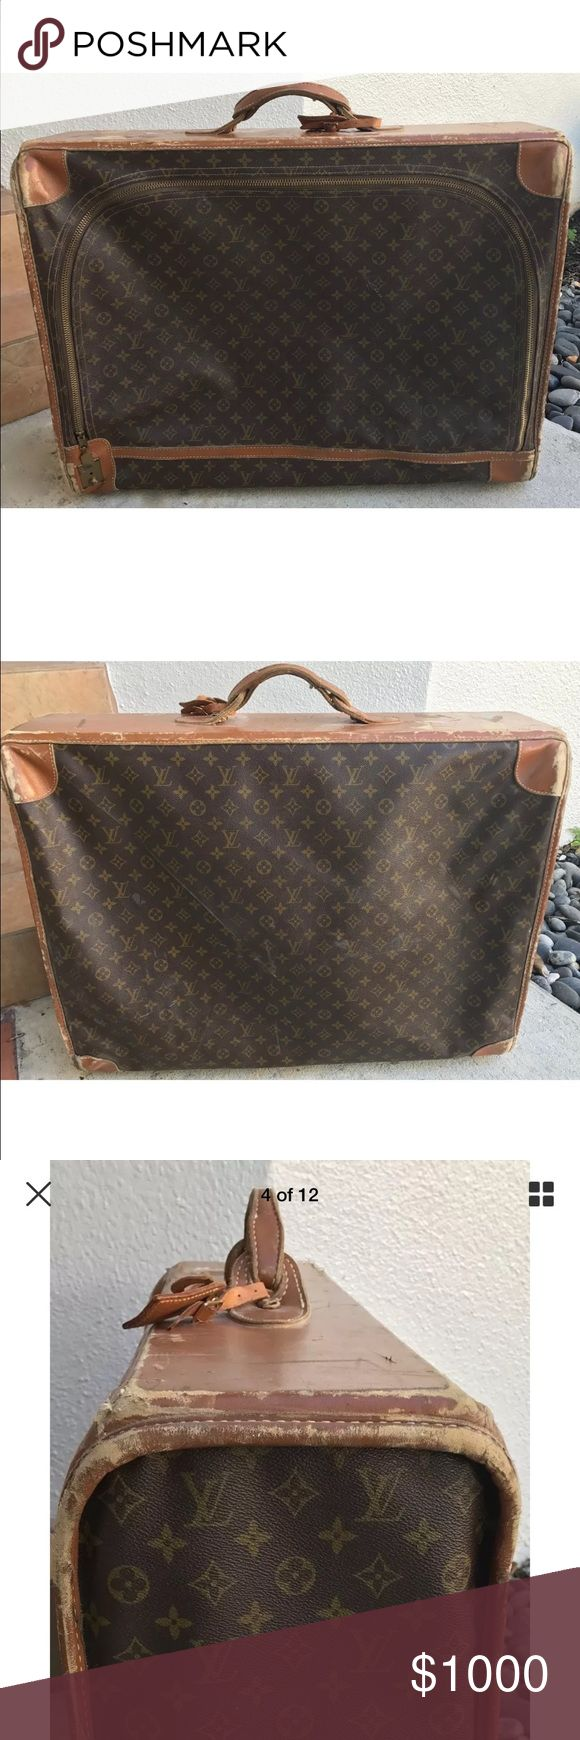 "Vintage 70's Louis Vuitton suitcase luggage Monogram Canvas with real leather trim Semi hard suitcase features one large zippered opening, two smaller inside pockets  brass feet  original luggage tag NO KEY for lock!   28"" X 21"" X 9""   card window inside that says Made for Louis Vuitton in the US by the French Company Lots of wear , looks vintage I did not try to clean it up Please note that vintage Louis Vuitton pieces often have different markings than current pieces.I guarantee that this…"